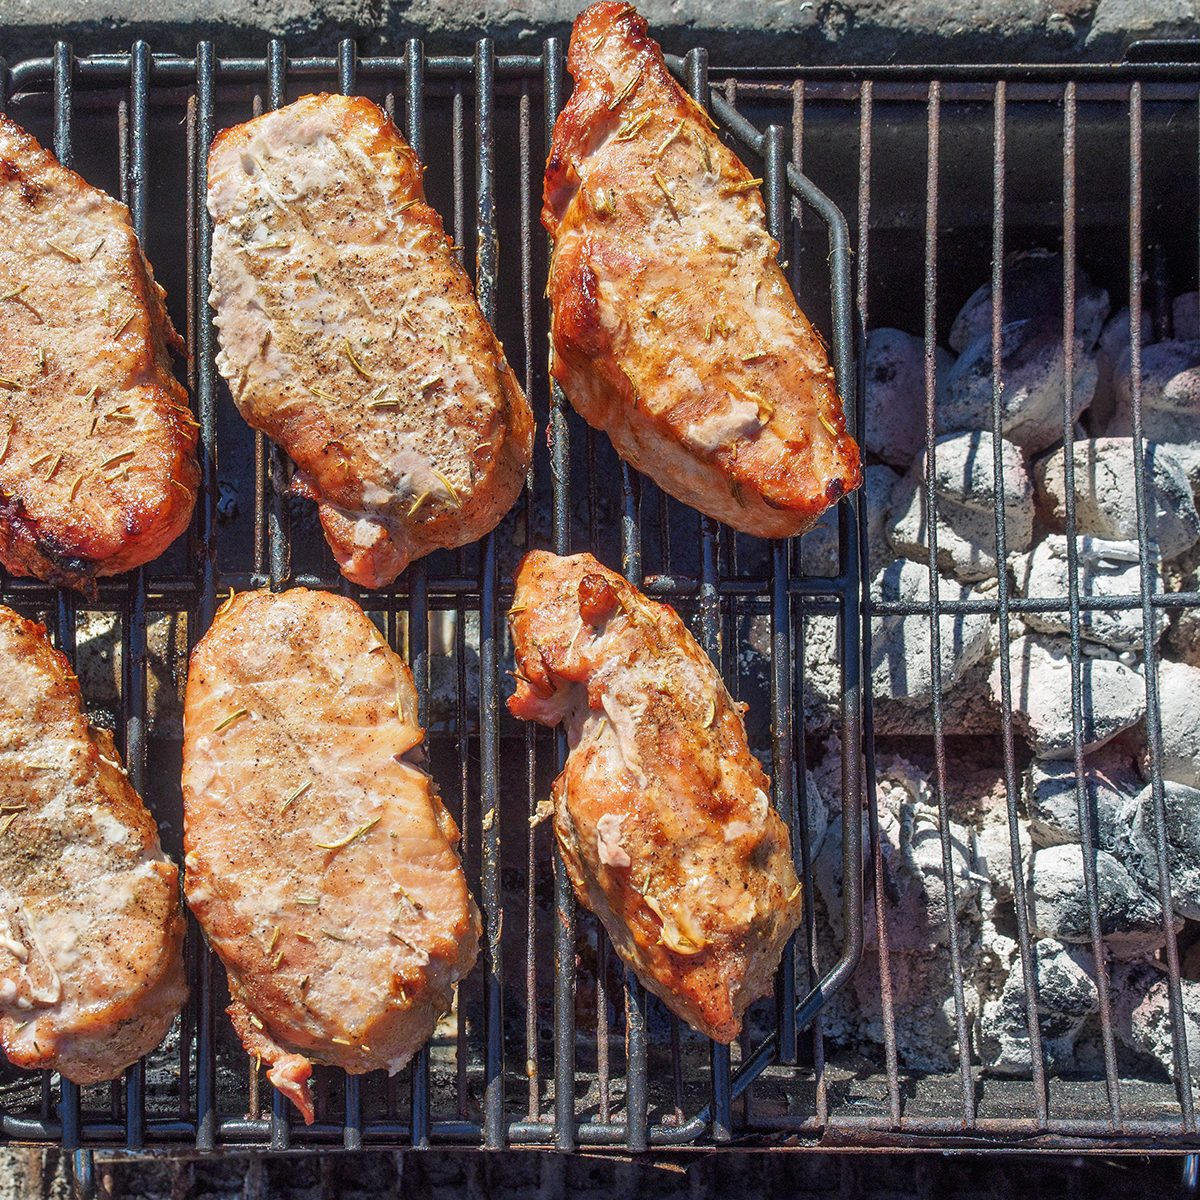 Pork chops cooked by indirect 2-zone grilling method